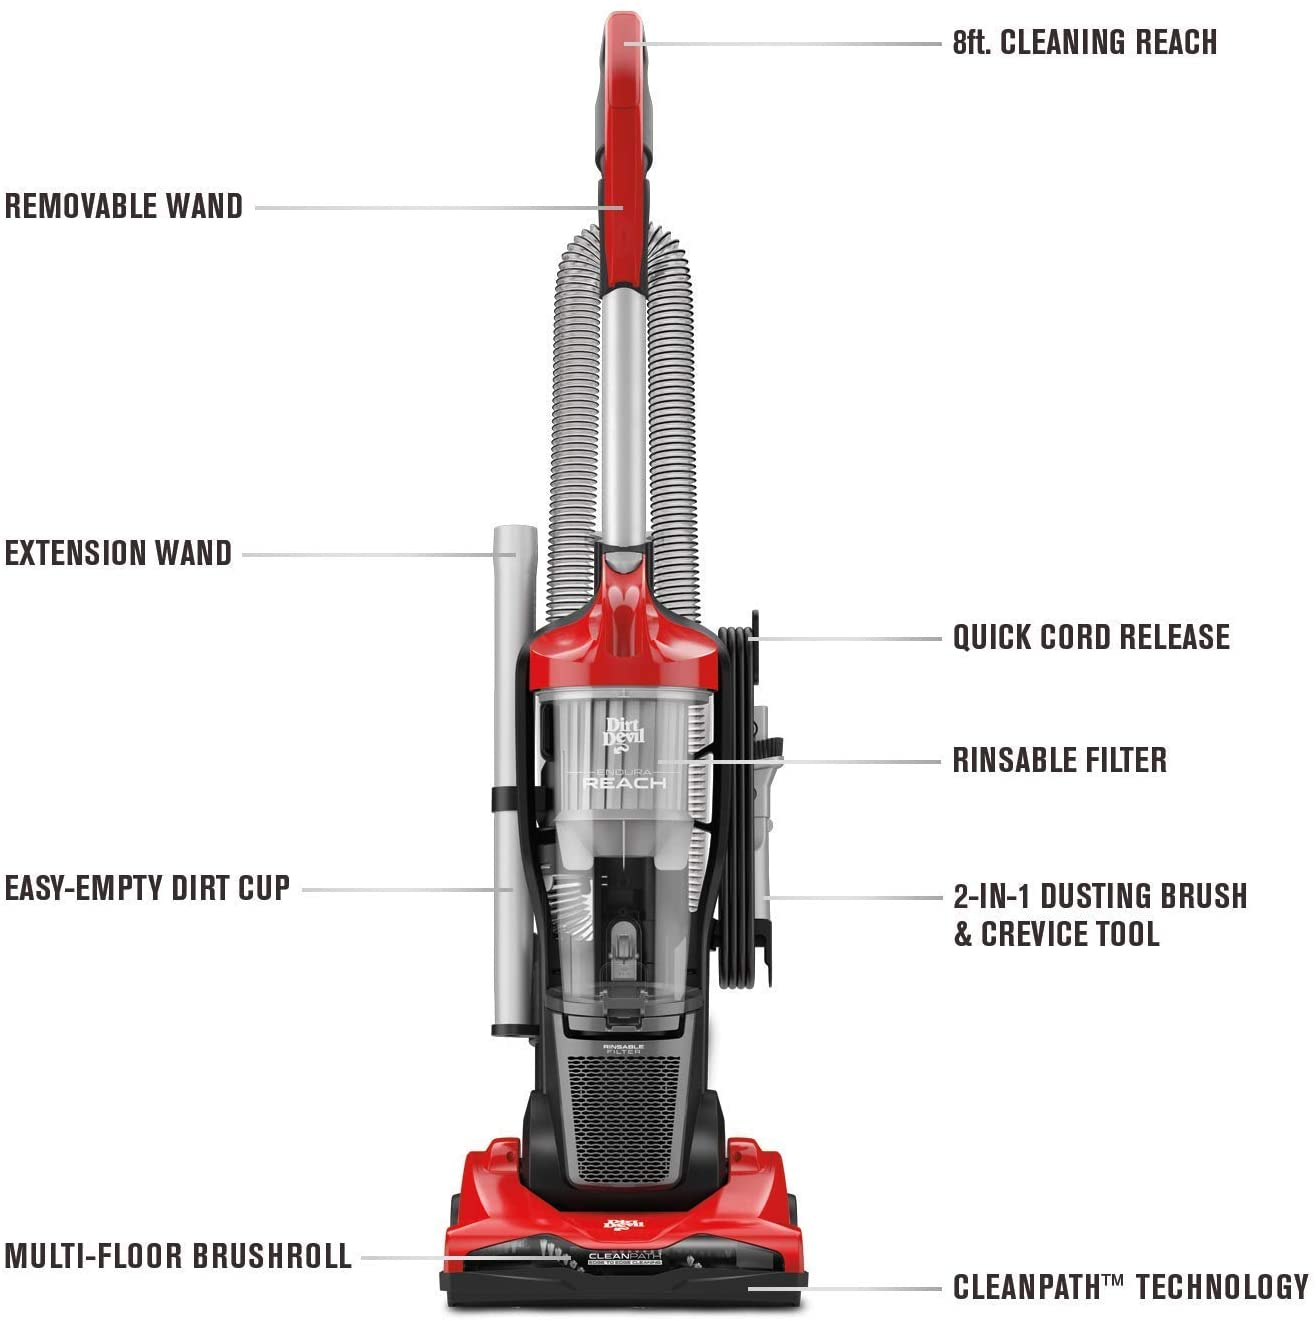 UD20124 with No Loss of Suction Renewed Dirt Devil Endura Reach Upright Vacuum Cleaner Red